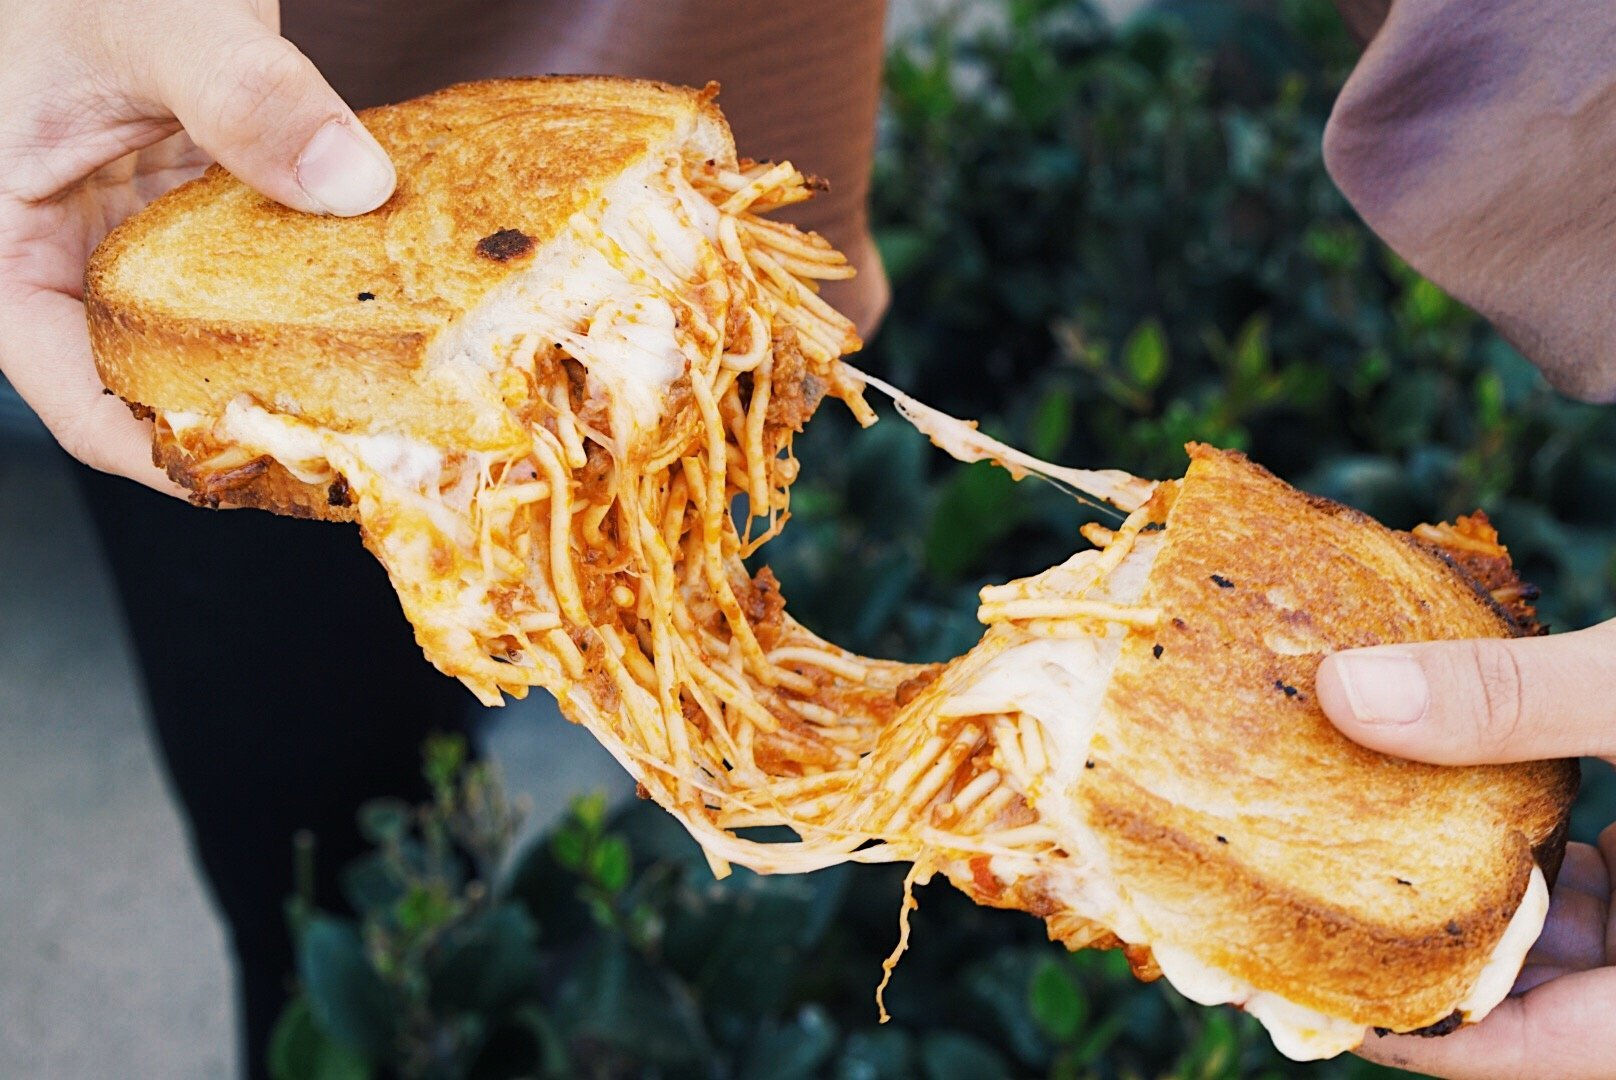 Foodies are Going Crazy Over This Sandwich for National Grilled Cheese Day!